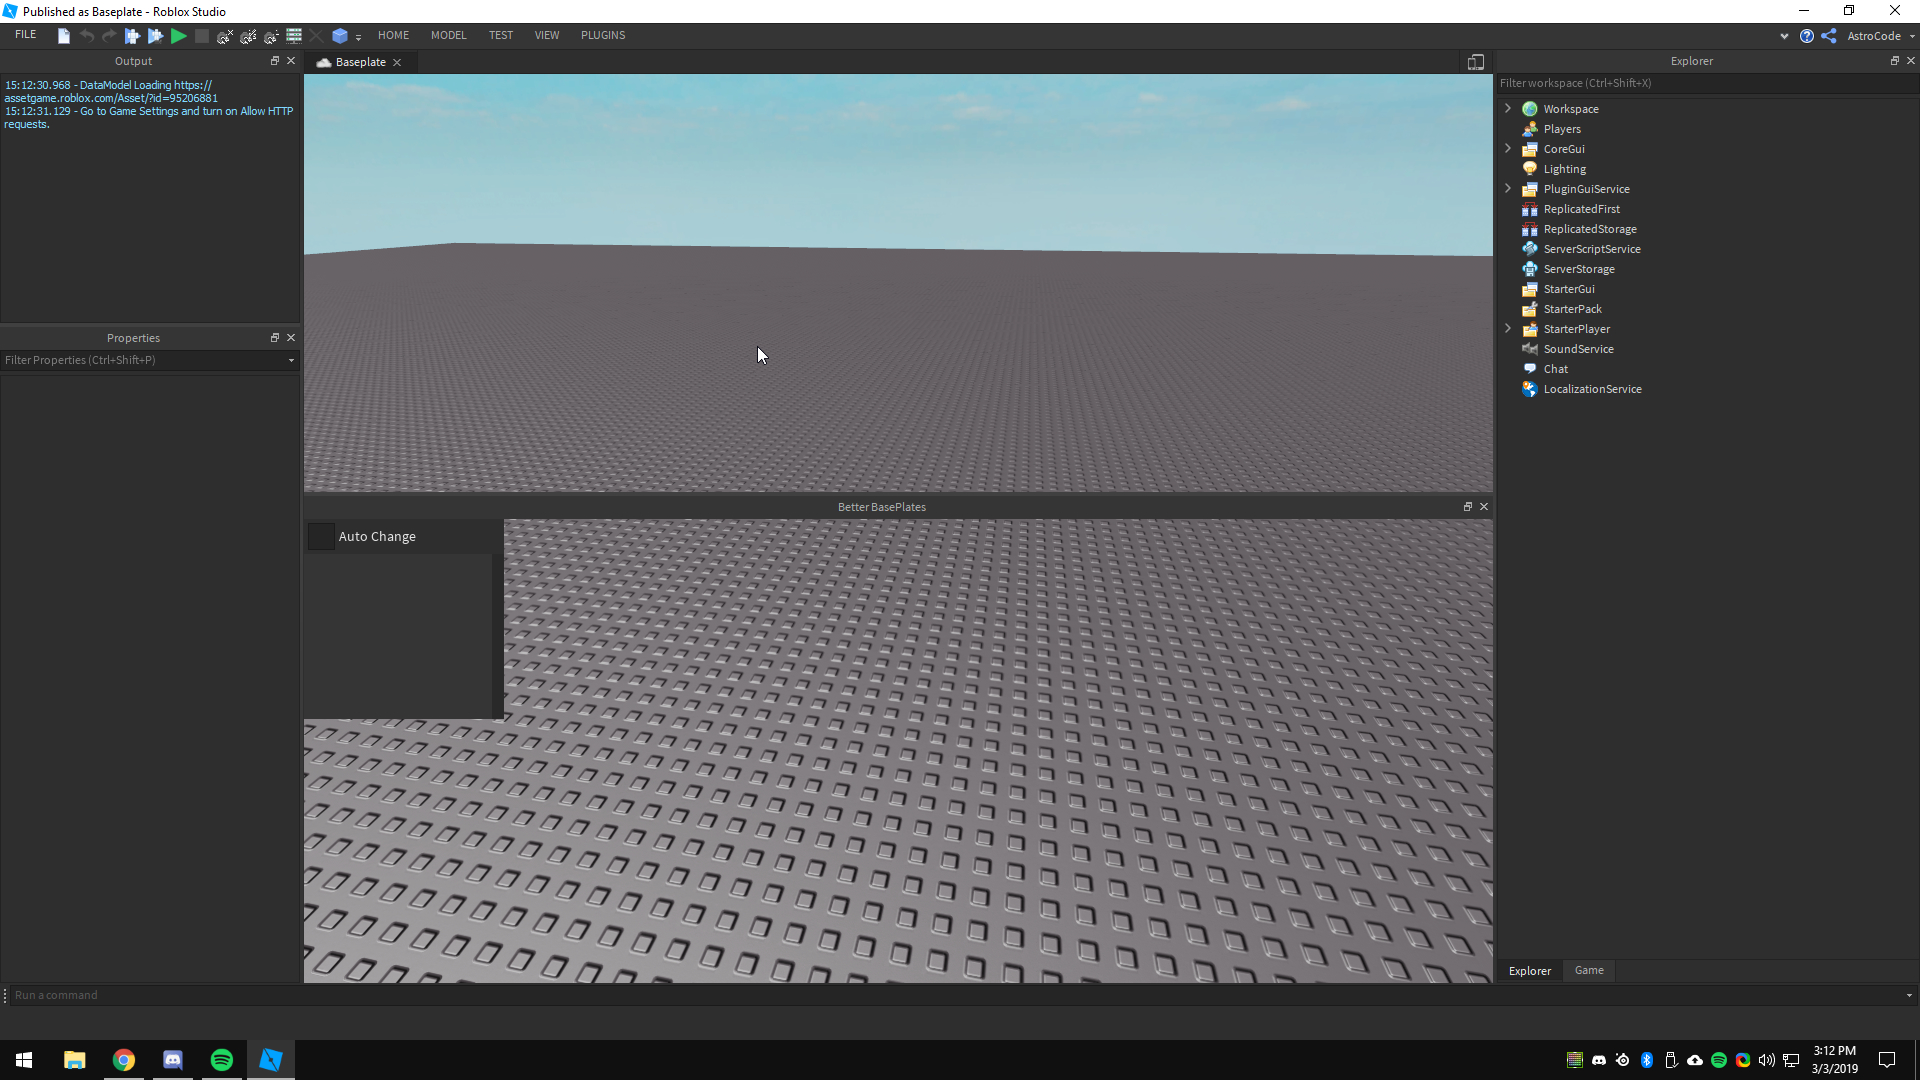 How To Delete A Baseplate In Roblox Studio